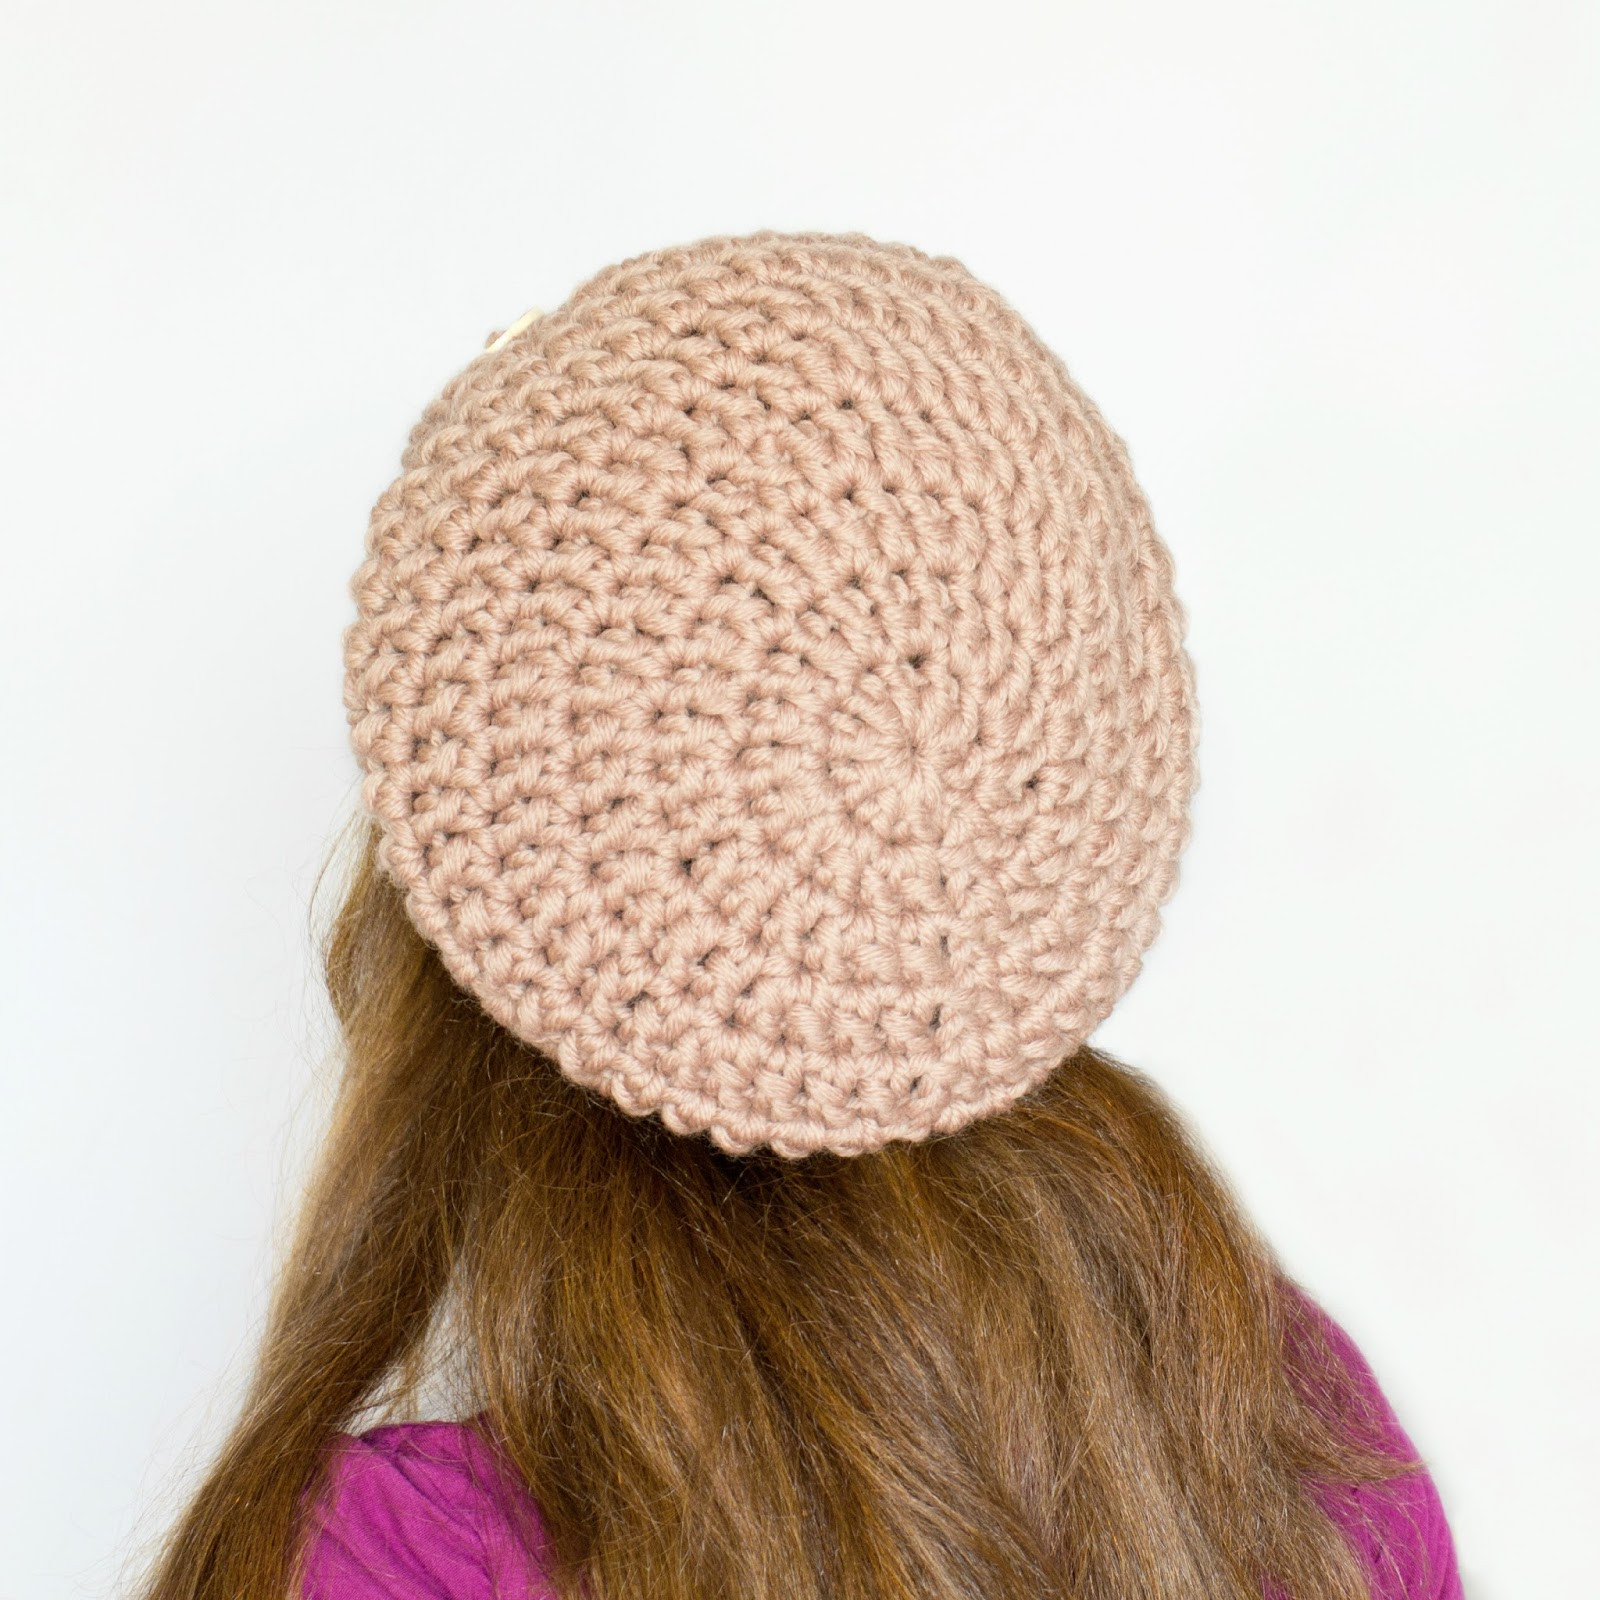 Slouchy Beanie Crochet Pattern Elegant Crochet Patterns Beanie Dancox for Of Superb 40 Images Slouchy Beanie Crochet Pattern